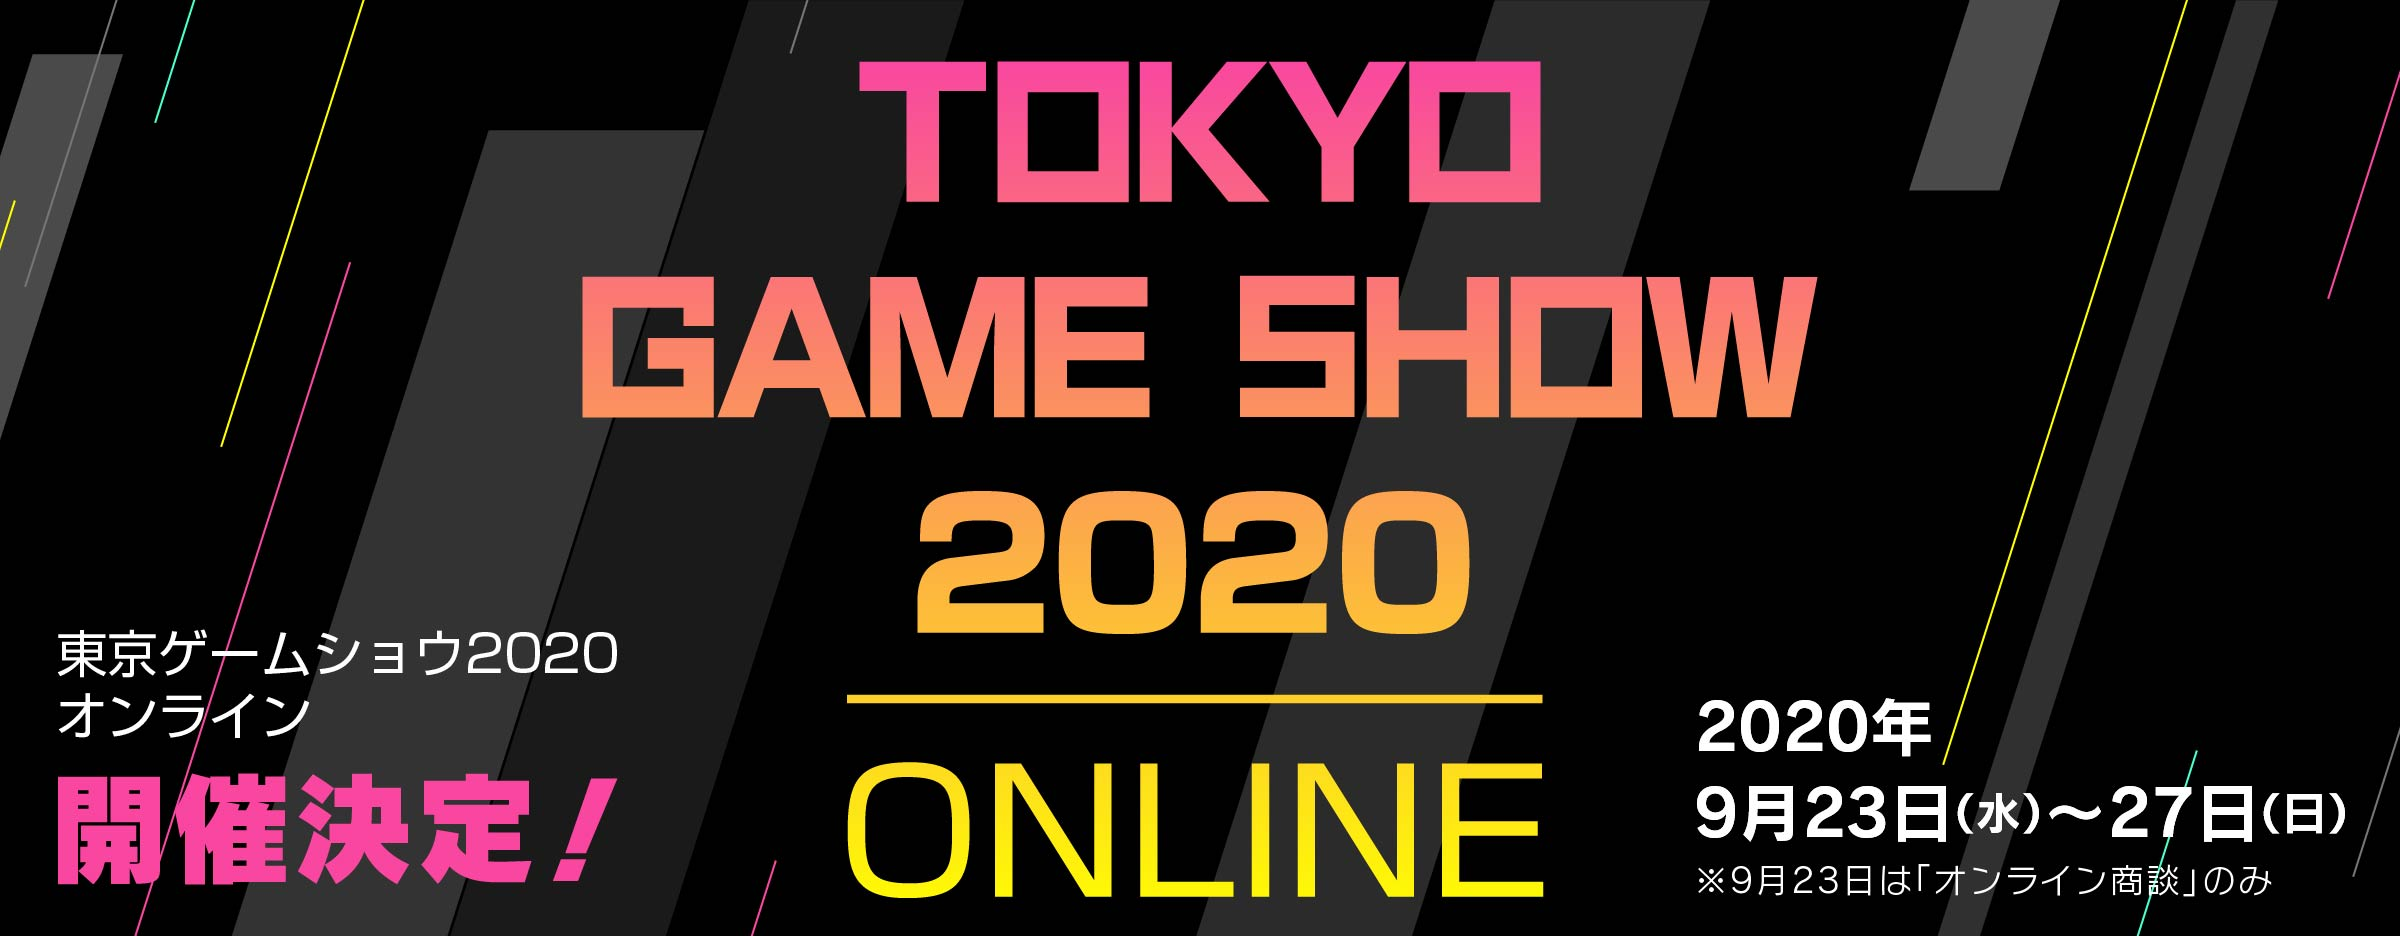 Tokyo Game Show 2020 going online